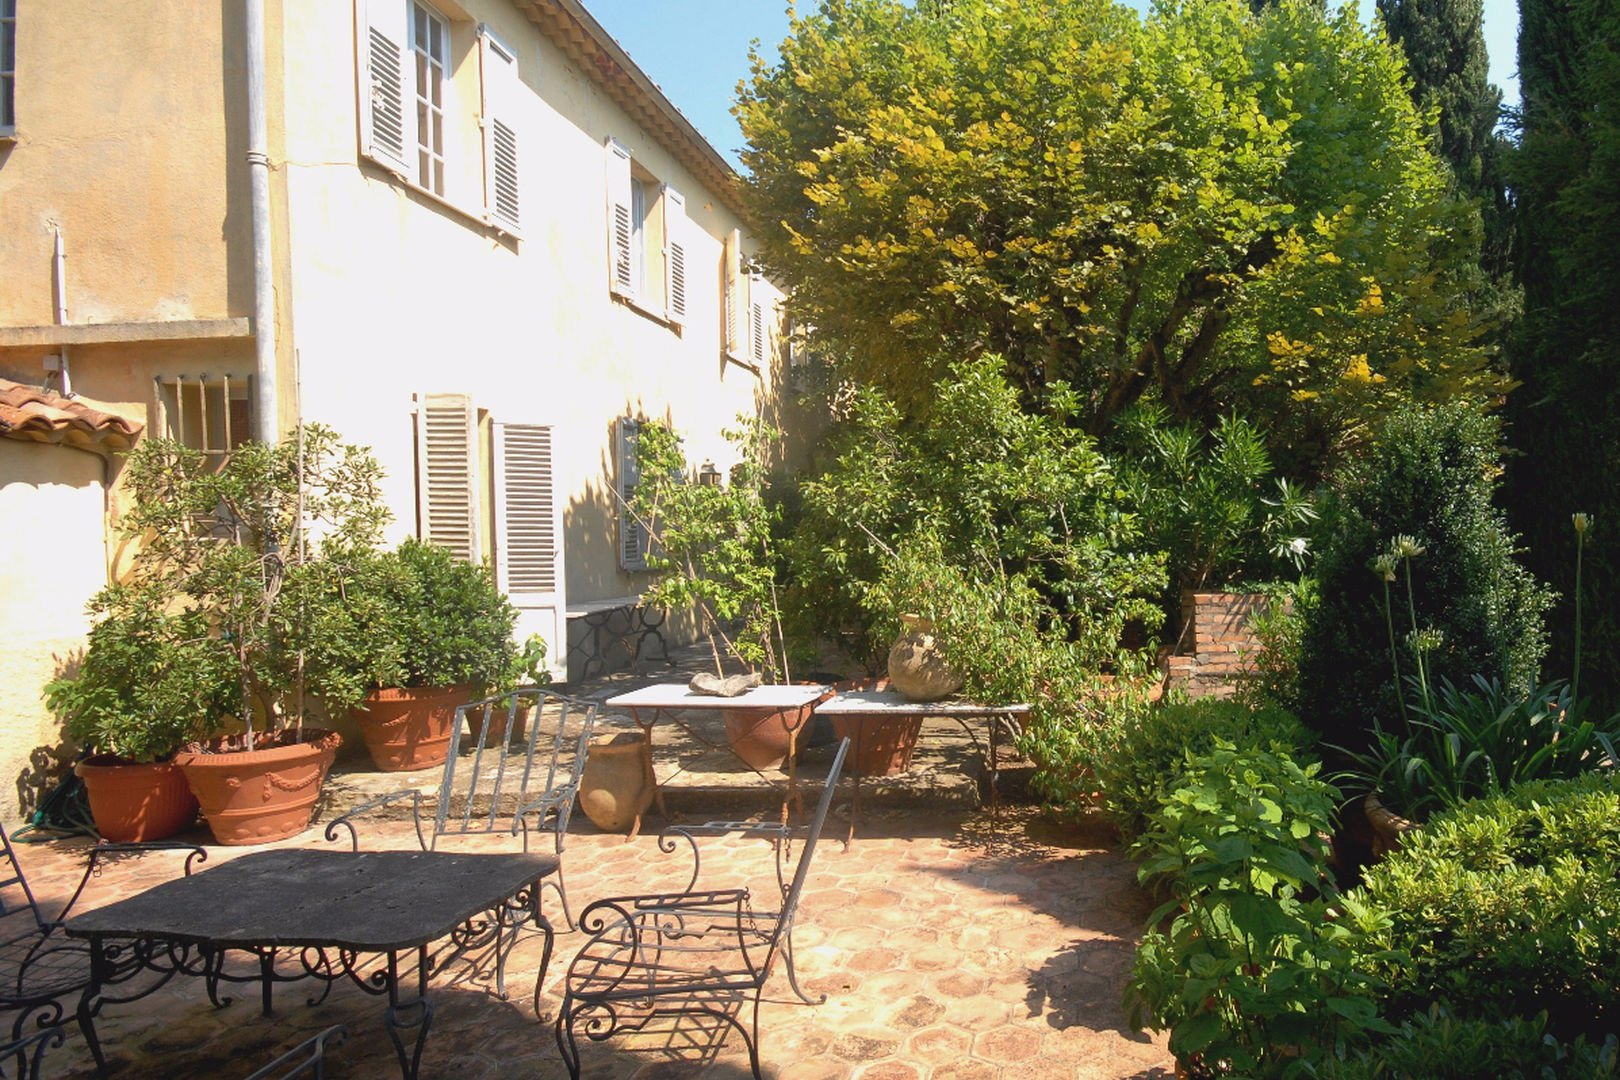 Authentique old farmhouse to renove near Mougins School et CIV